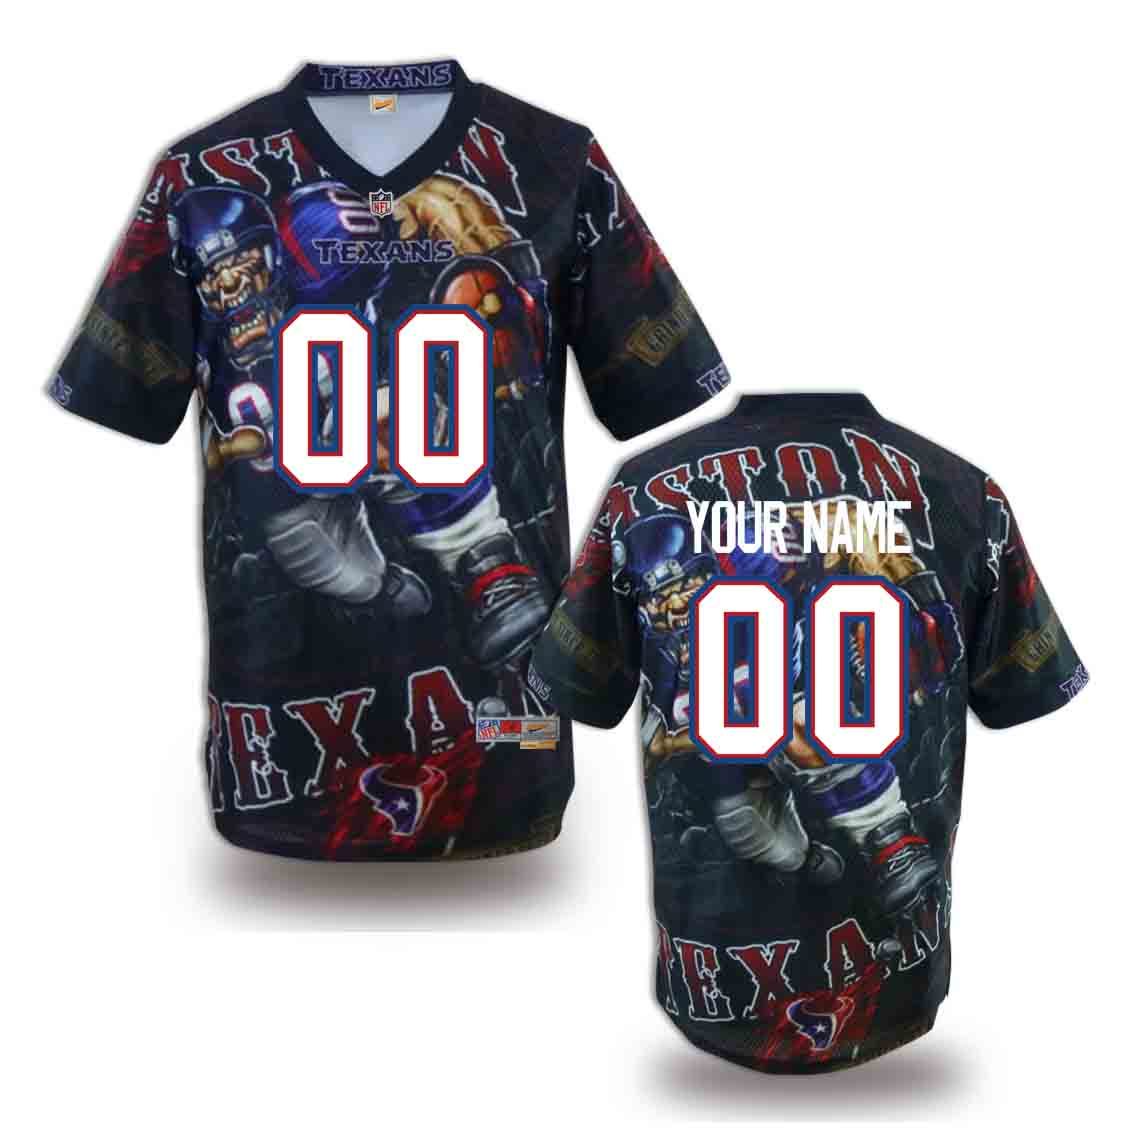 Nike Texans Customized Fashion Stitched Jerseys02